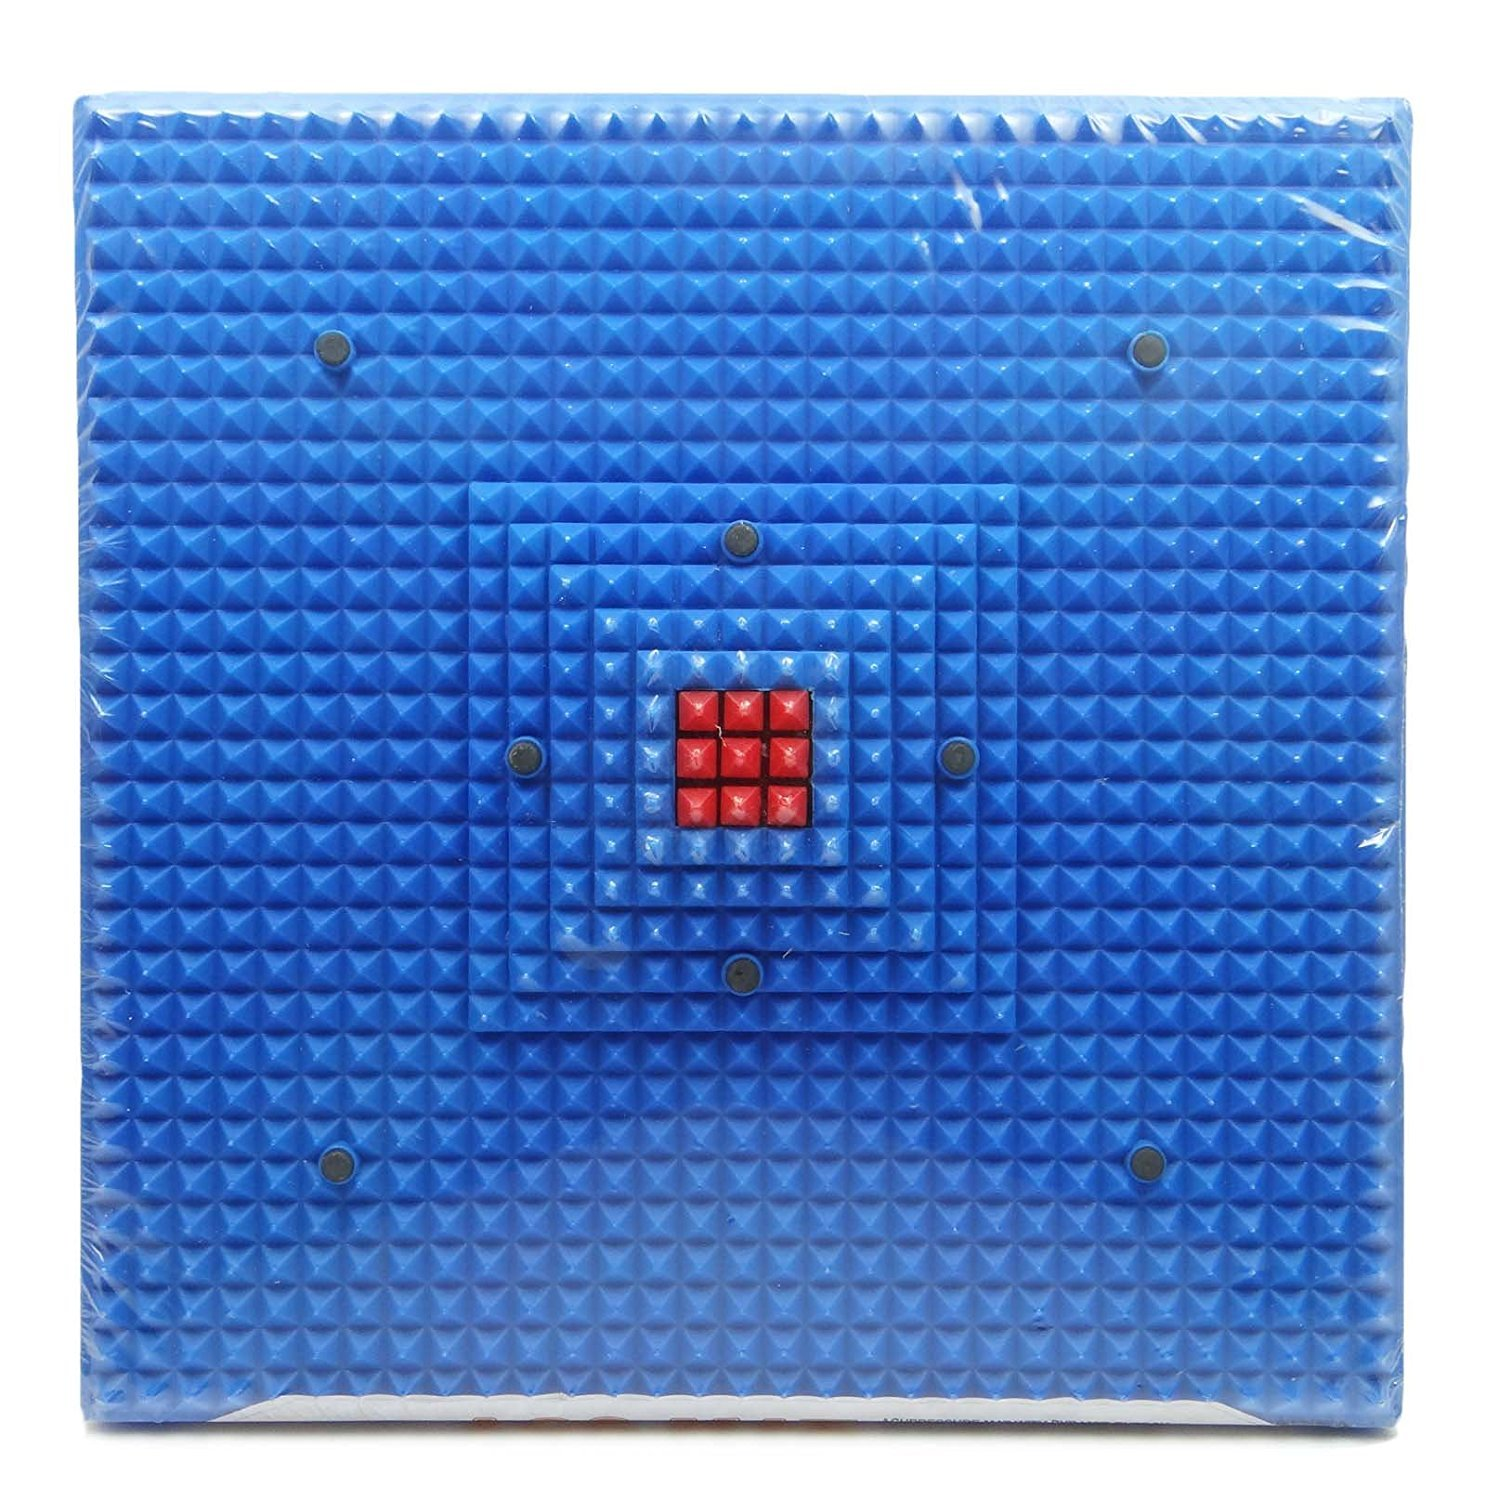 Acupressure Reflexology Magnetic Pyramidal Therapy Energy Pain Relief Power Foot Health Deluxe Mat for Acupressure Health Care Systems Hyderabad